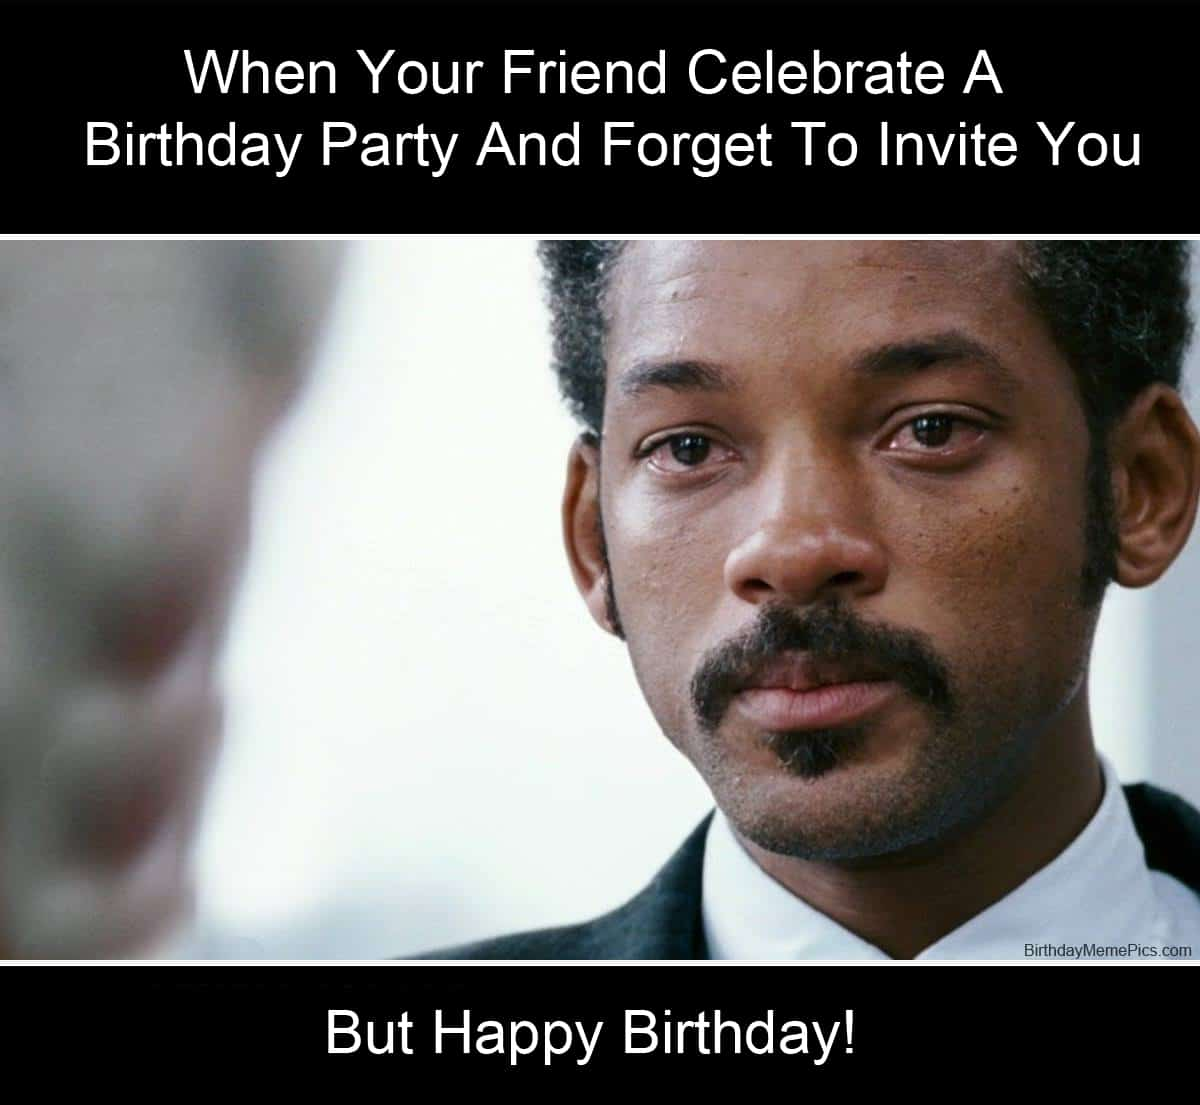 Cozy Sad Friend Birthday Meme Birthday Memes Your Friend Happy Birthday Meme Female Friend Happy Birthday Girl Meme gifts Happy Birthday Girl Meme